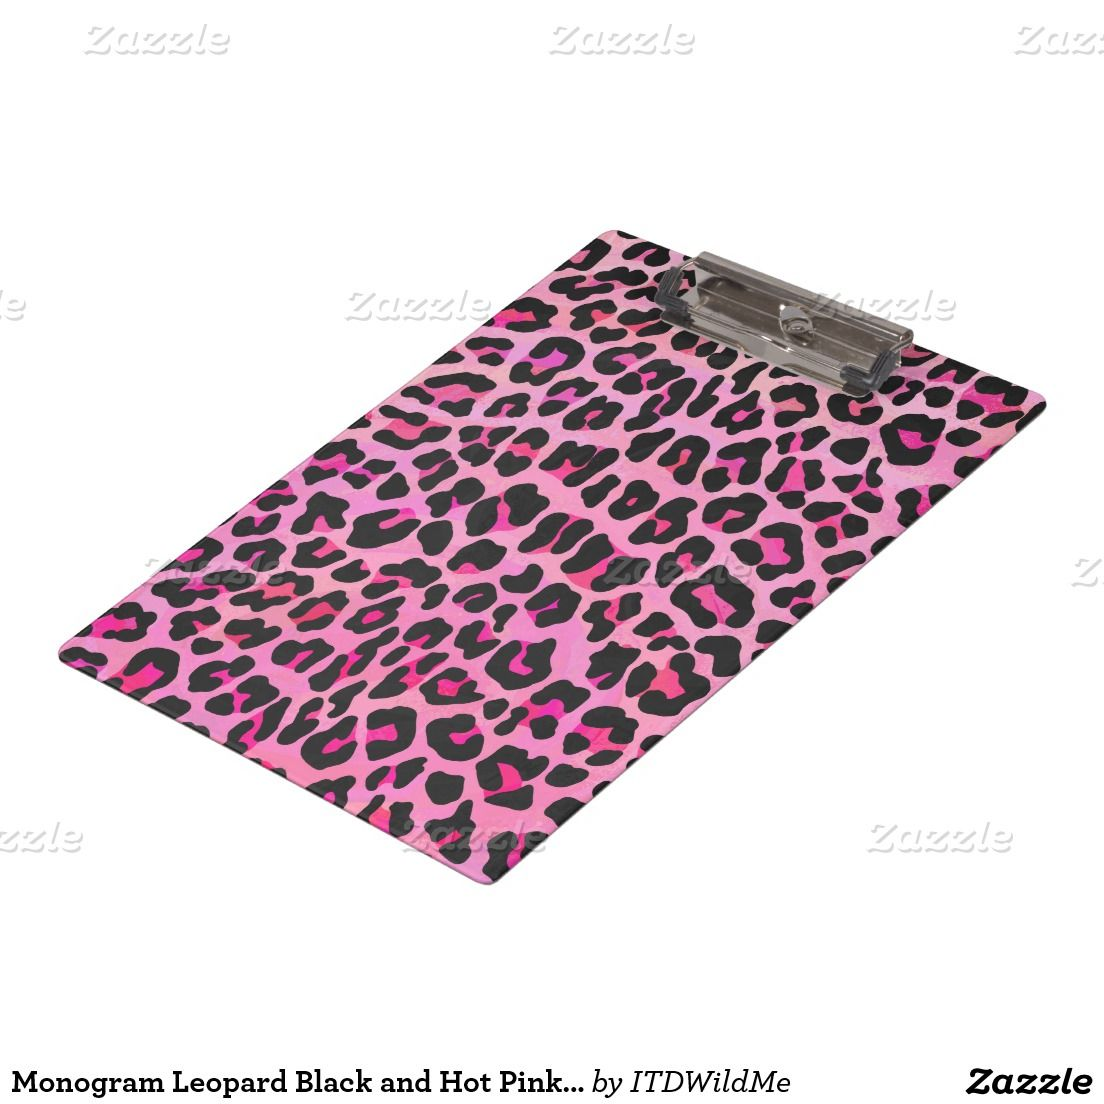 Monogram Leopard Black and Hot Pink Print Clipboard